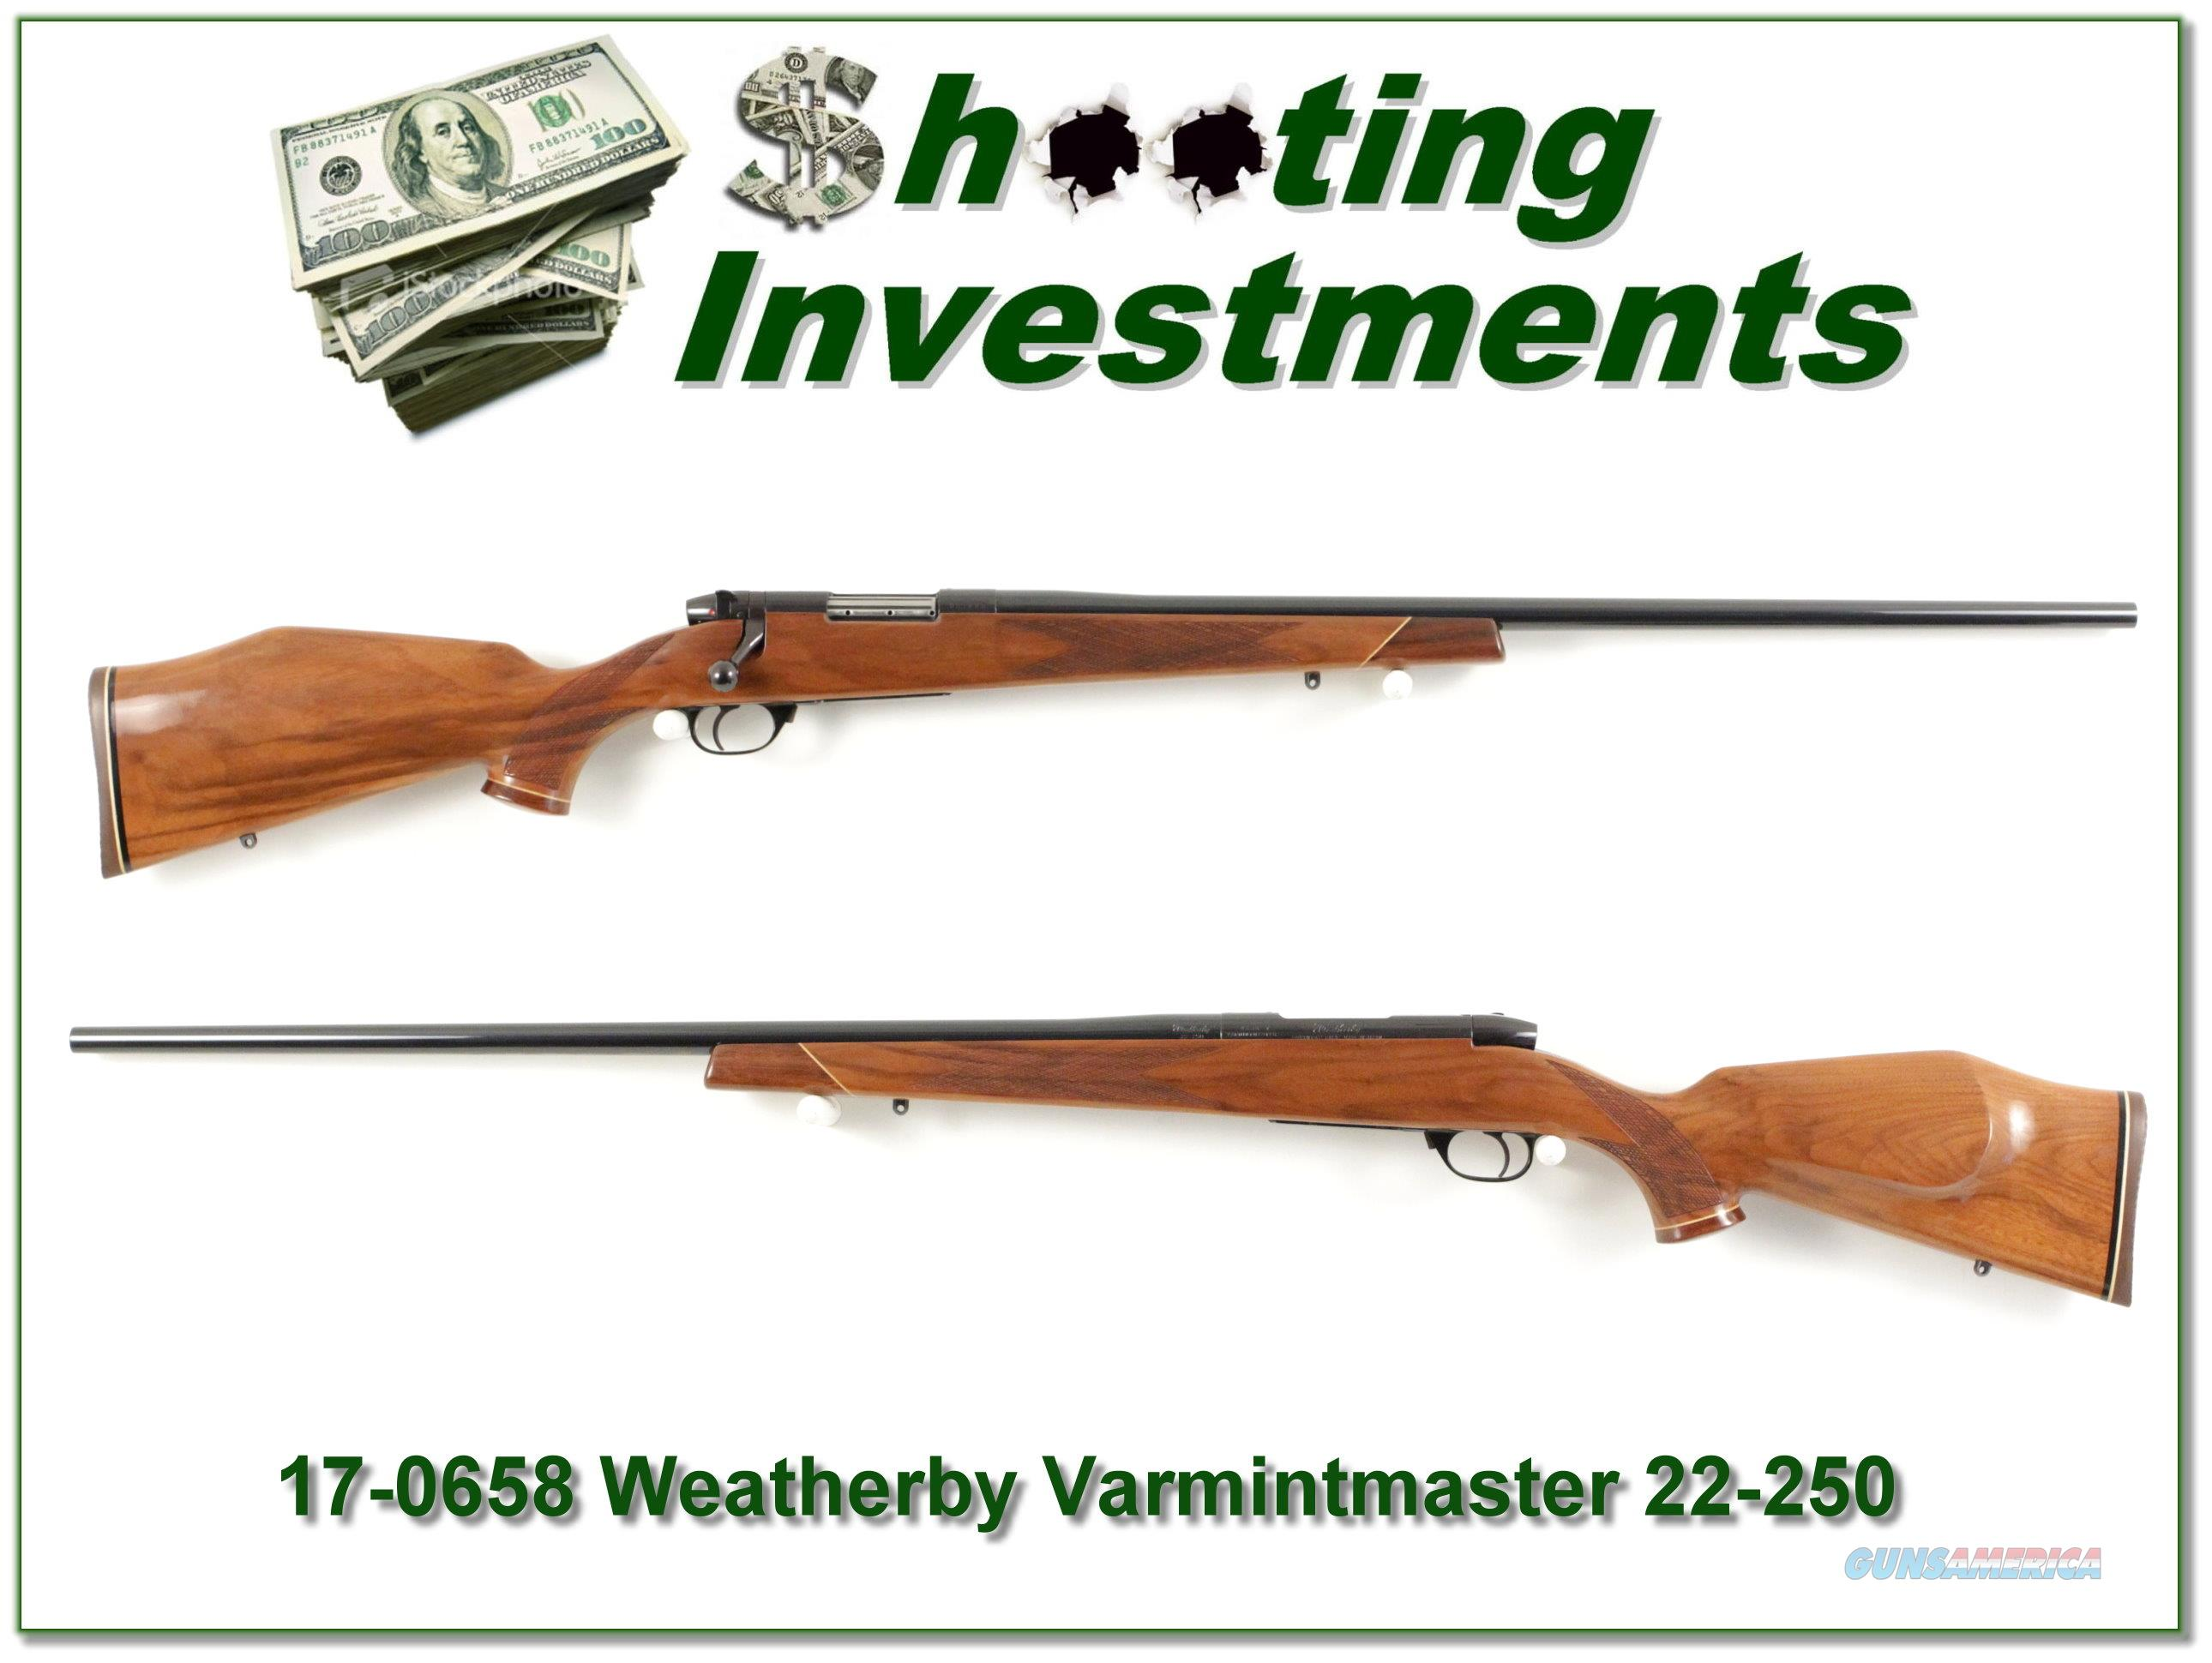 Weathebry Mark V Varmintmaster 22-250 26in  Guns > Rifles > Weatherby Rifles > Sporting